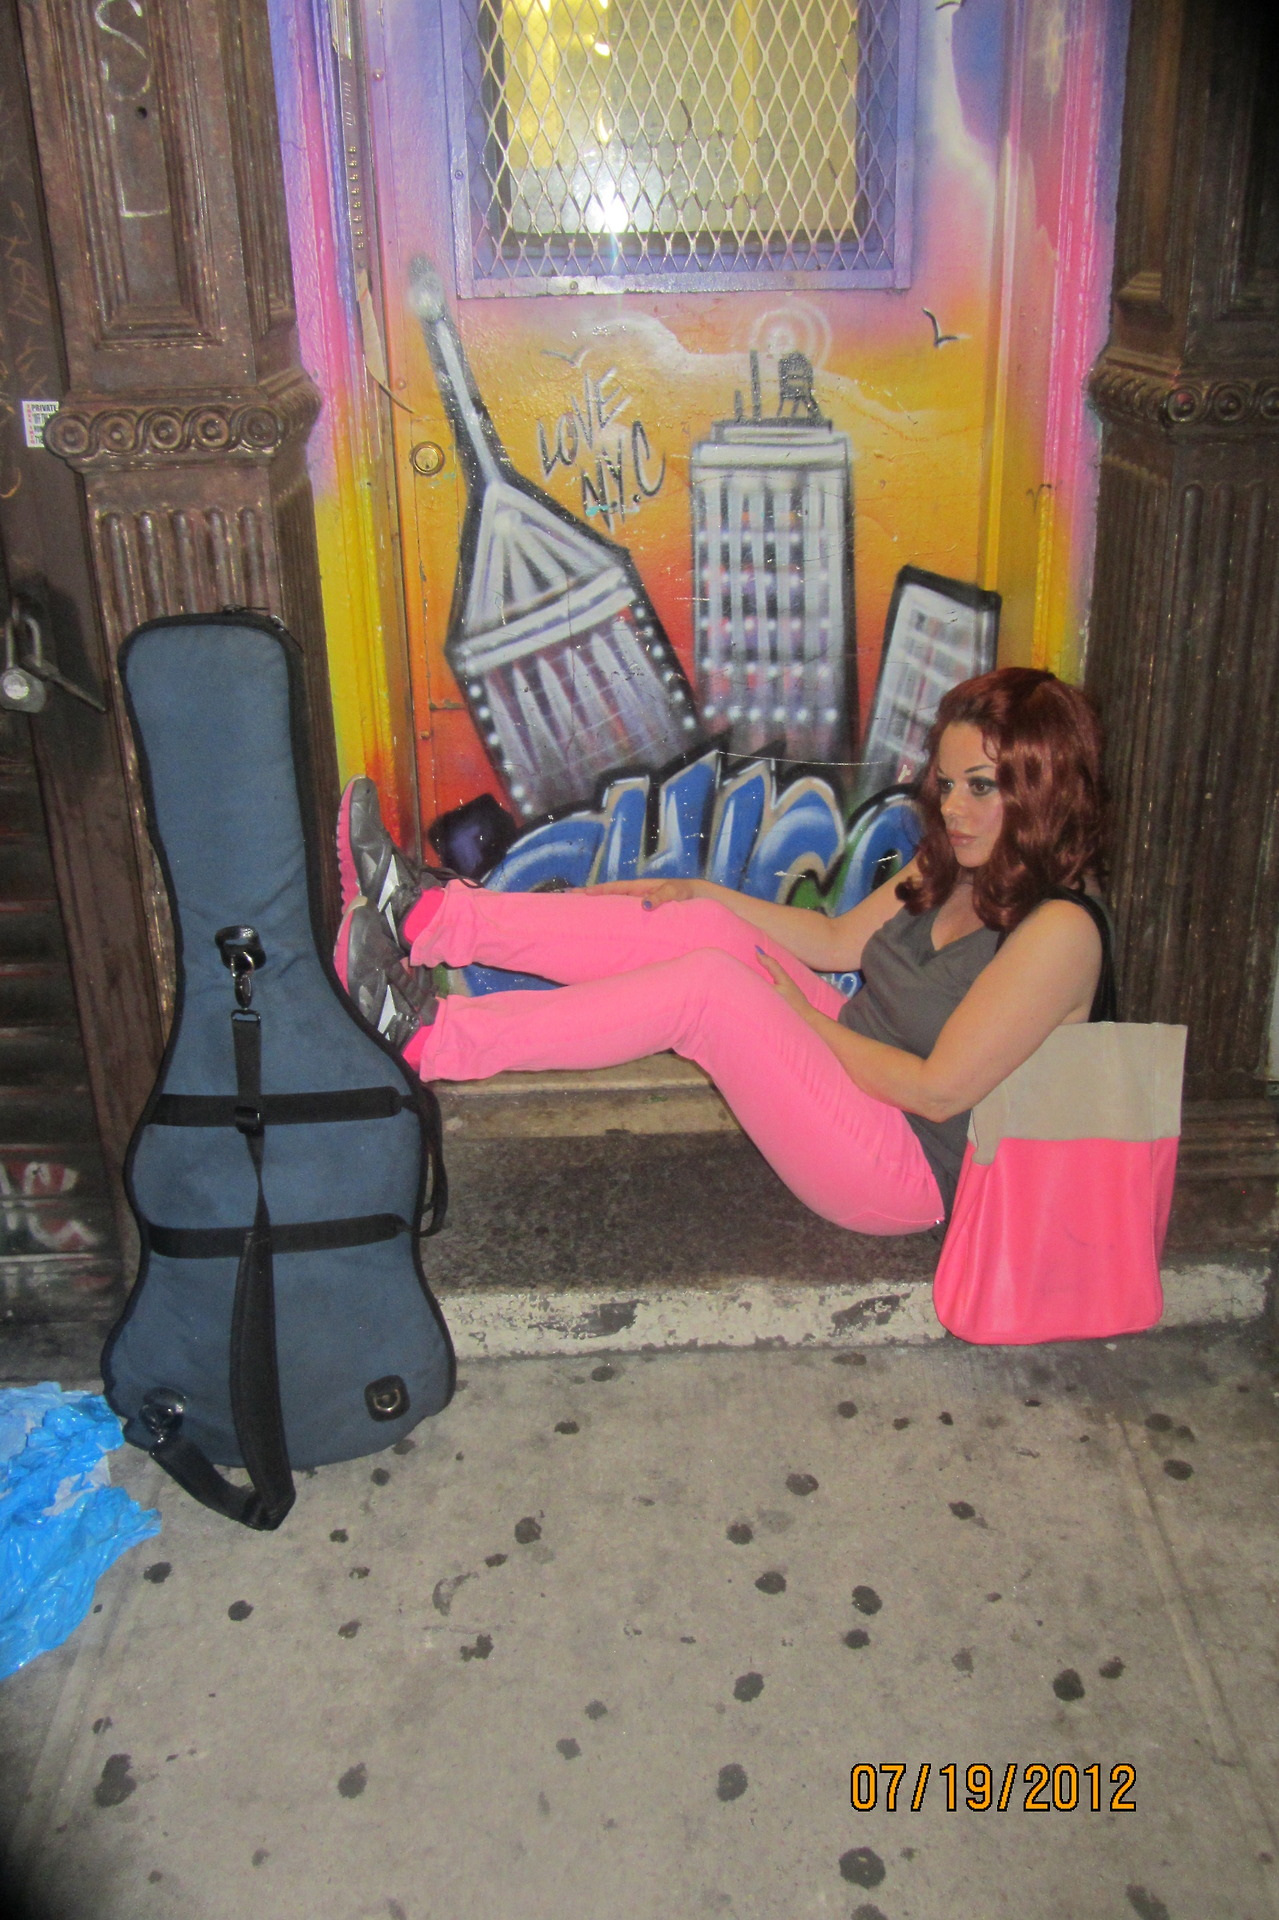 I love NY! and look at all the gum on the ground!!! ..lady miss kier ..www.ladykier.com http://www.mixcloud.com/ladykier/  https://www.facebook.com/pages/miss-Lady-Kier/296808489716?fref=ts